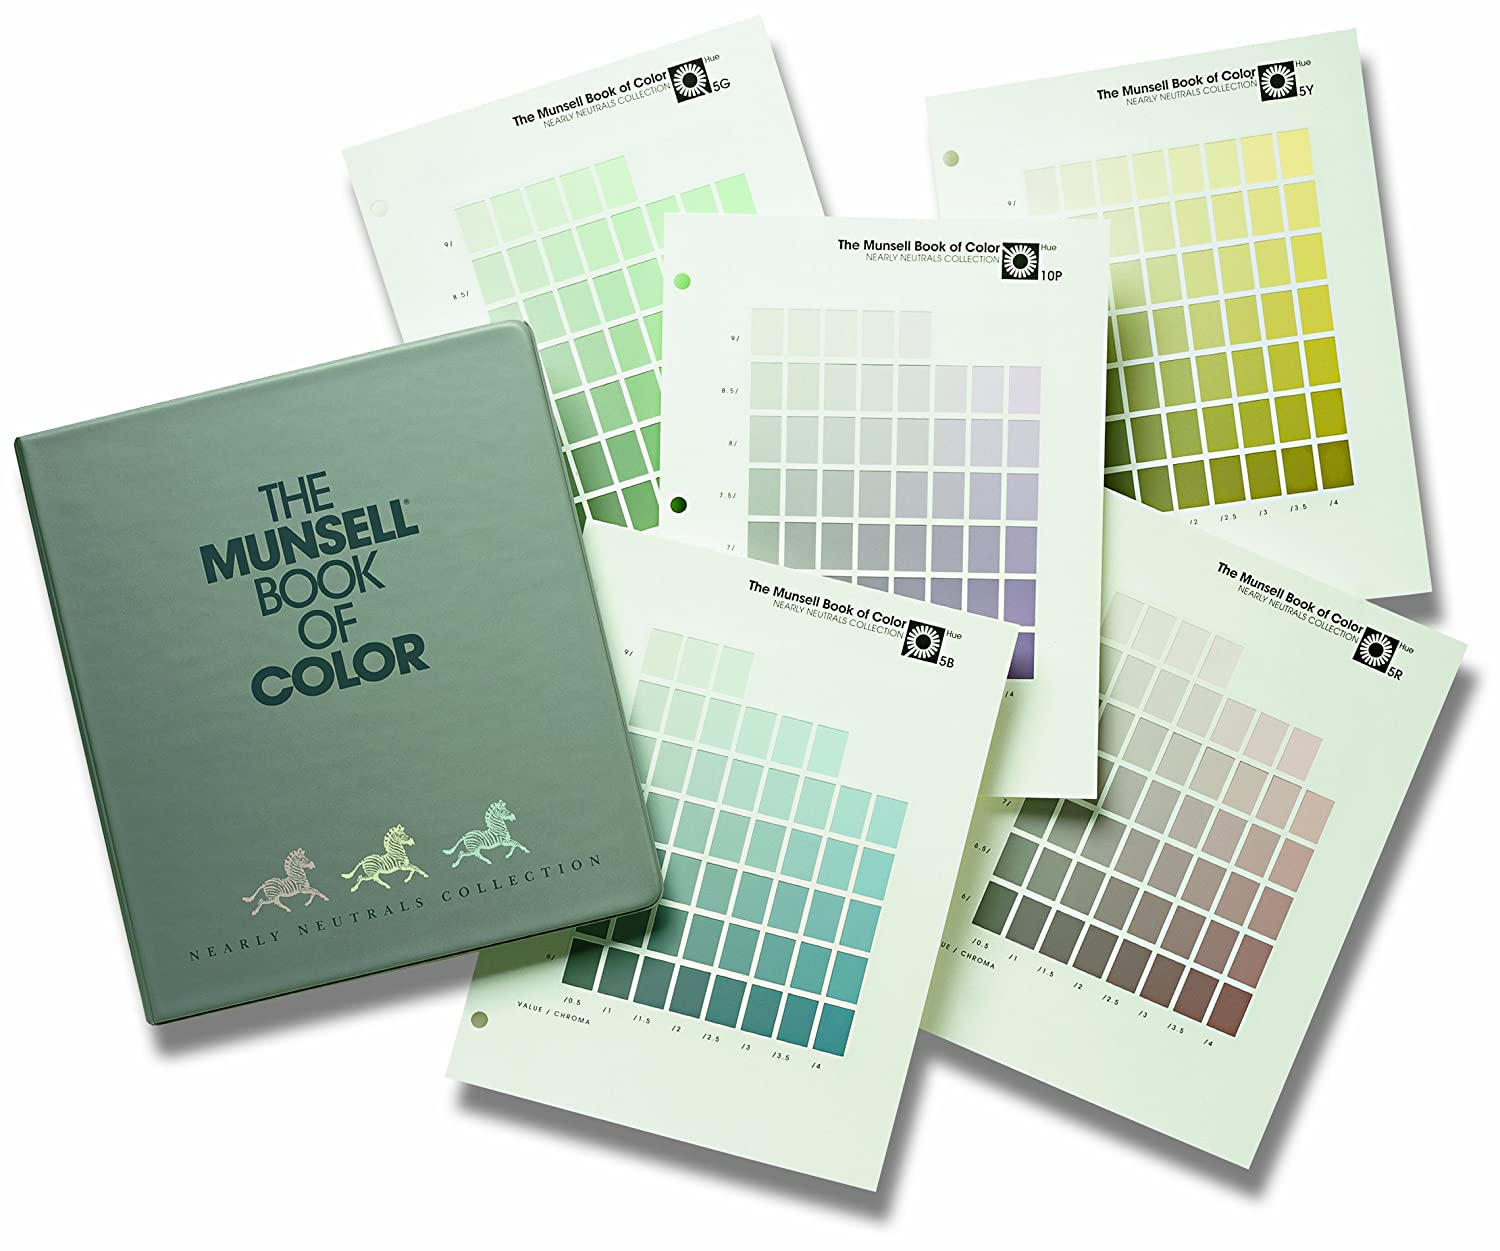 x rite munsell m40328b book of color nearly neutrals photo studio support equipment amazoncom - Munsell Book Of Color